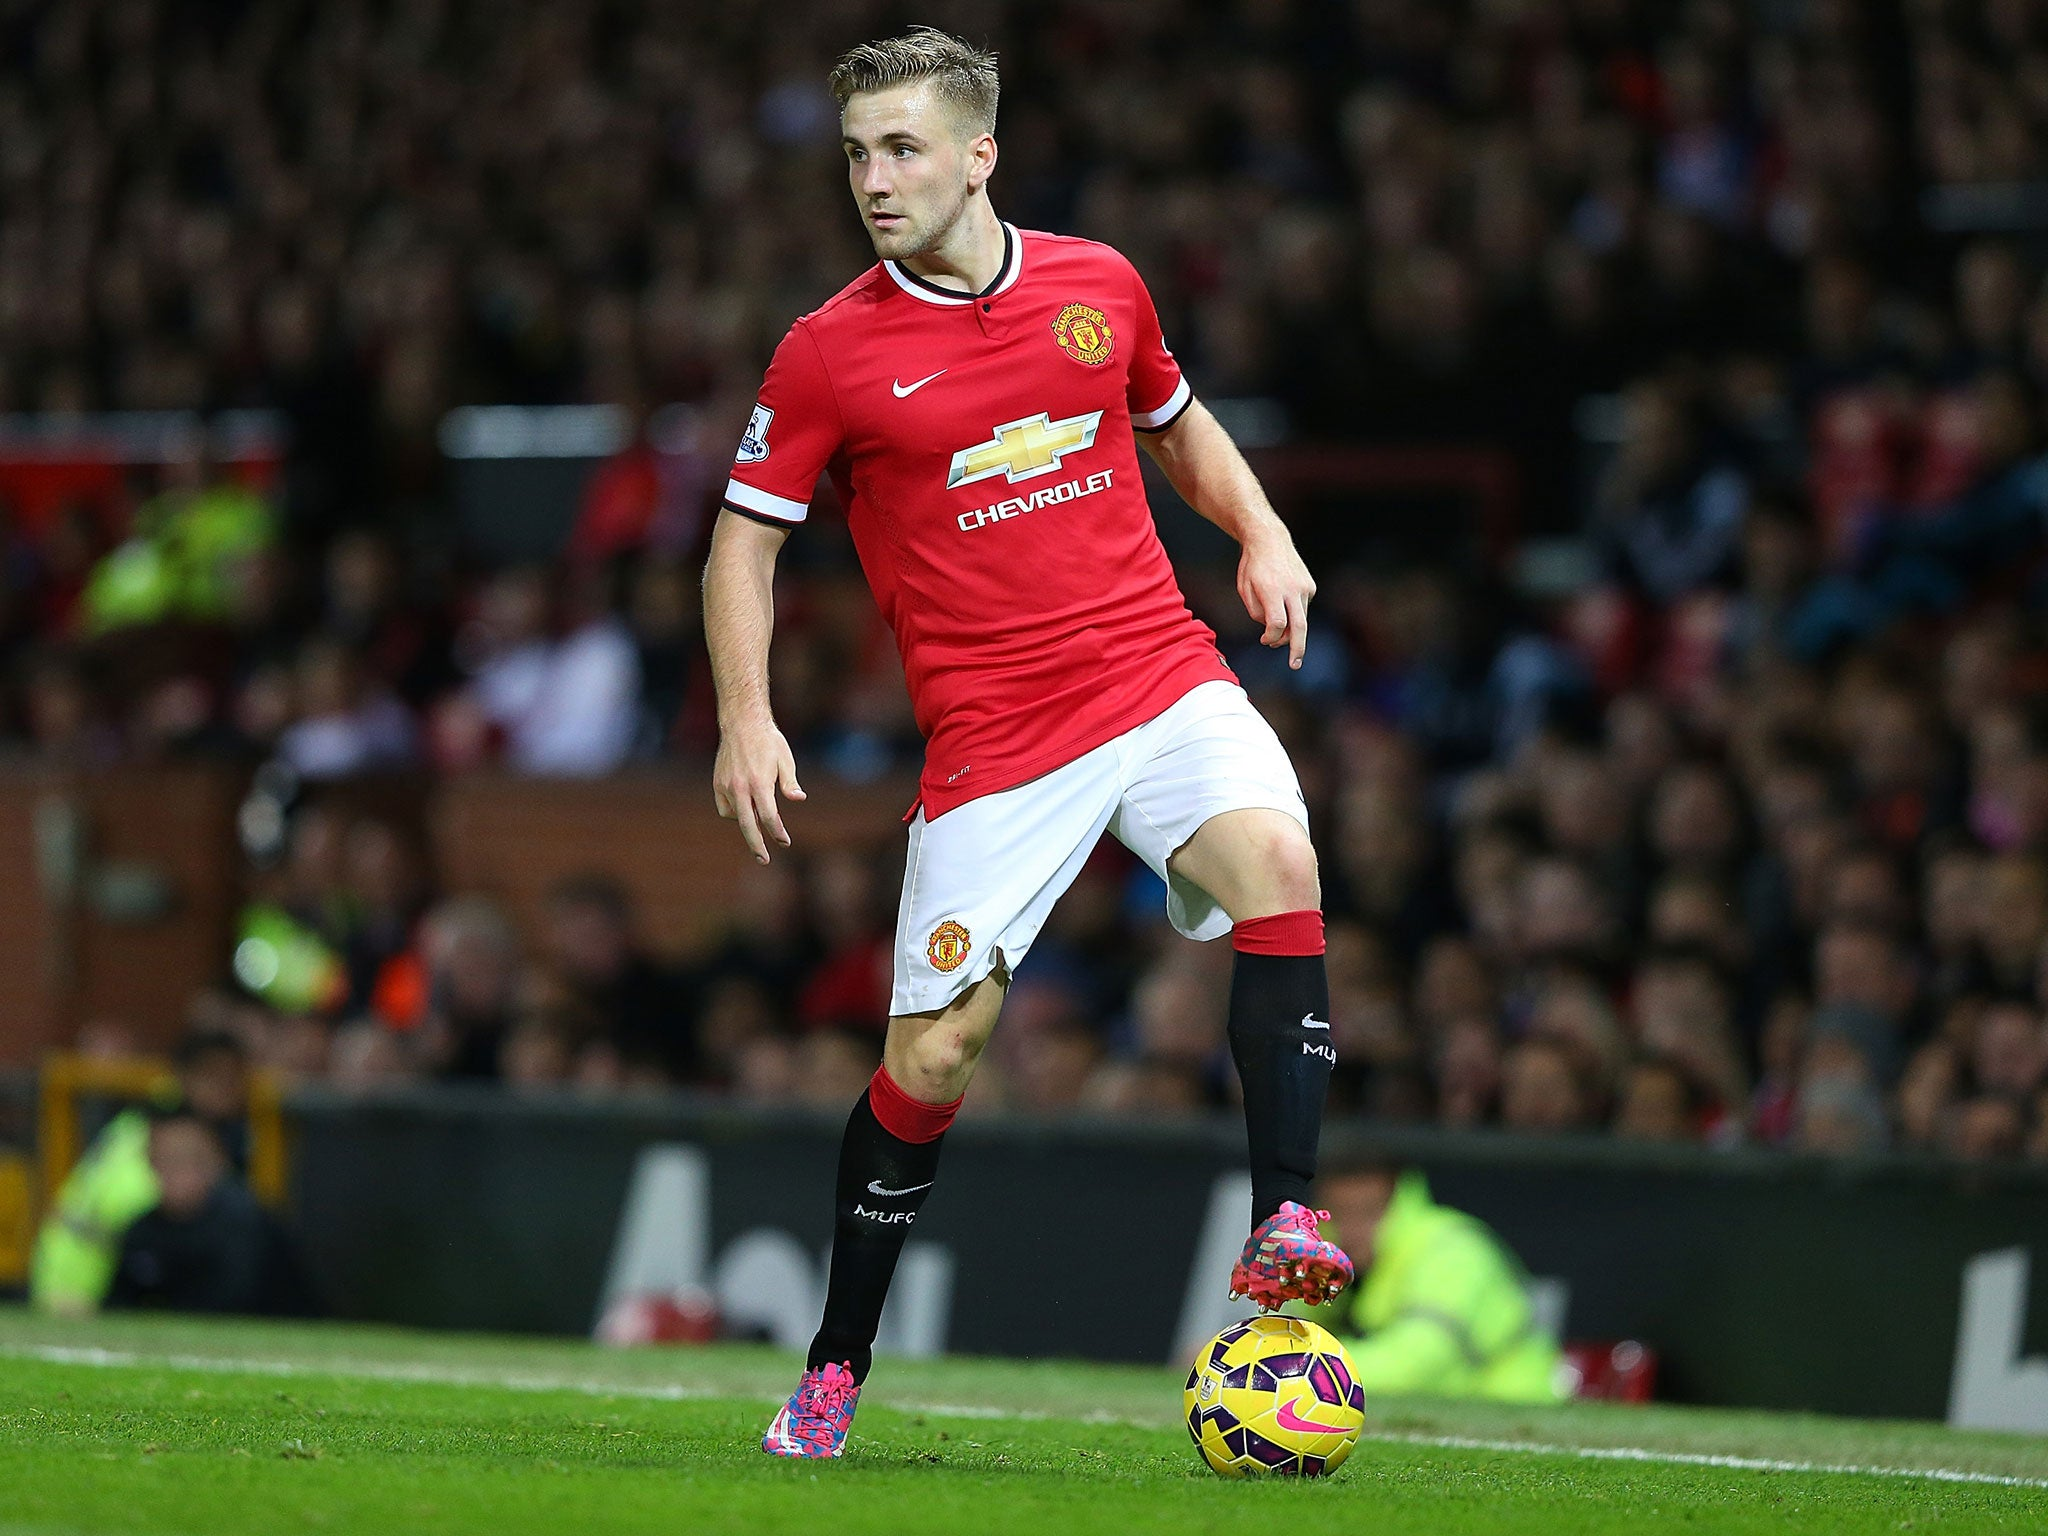 http://static.independent.co.uk/s3fs-public/thumbnails/image/2014/10/28/08/Luke-Shaw-2.jpg